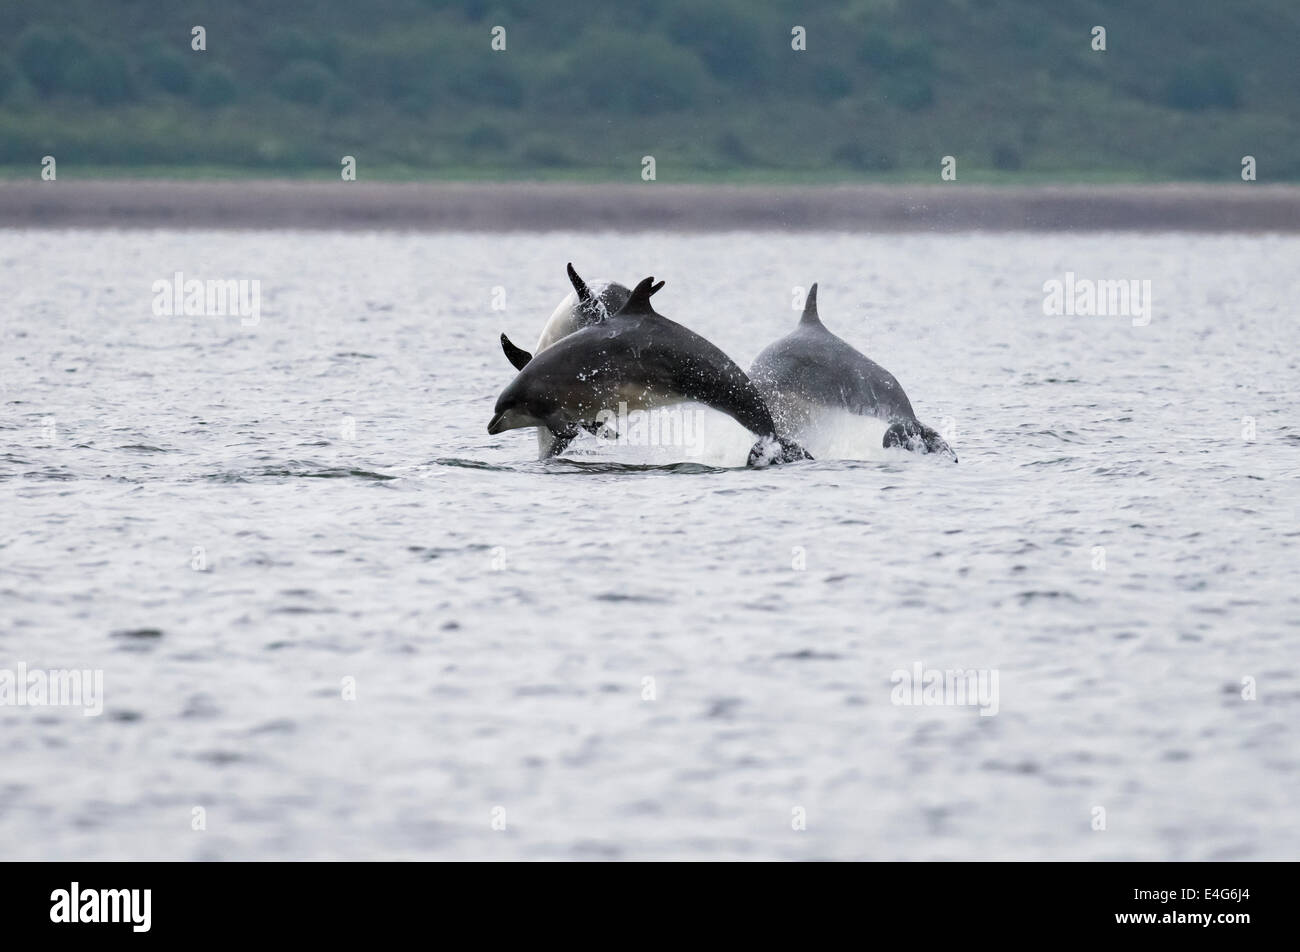 Bottlenose Dolphins breaching at Chanonry Point, Scotland - Stock Image